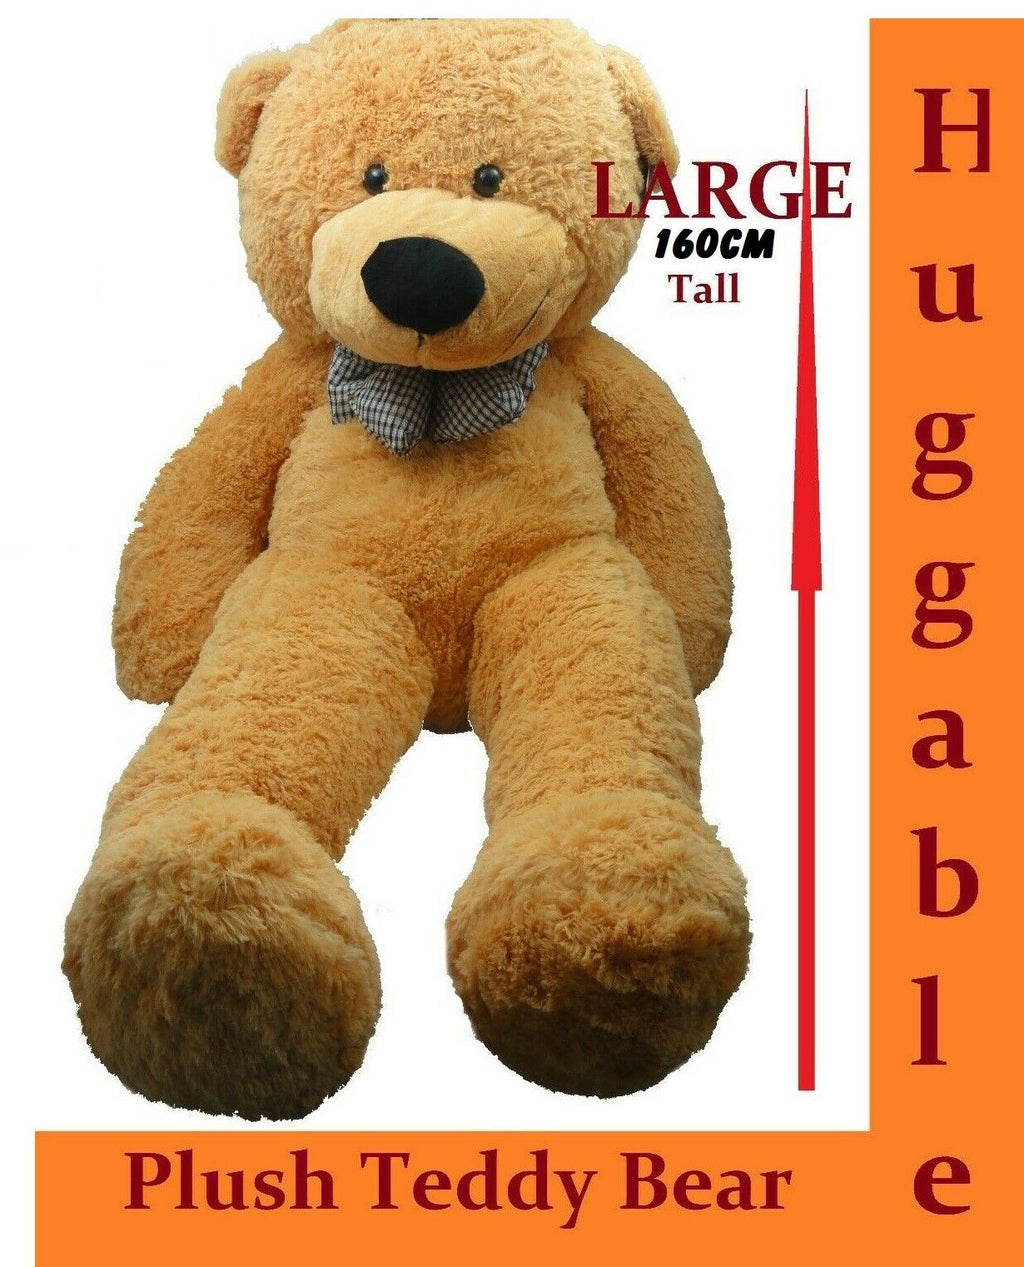 1.6.M GIANT HUGE STUFFED TEDDY BEAR & BOW TIE HUGGABLE SOFT PLUSH TAN NEW